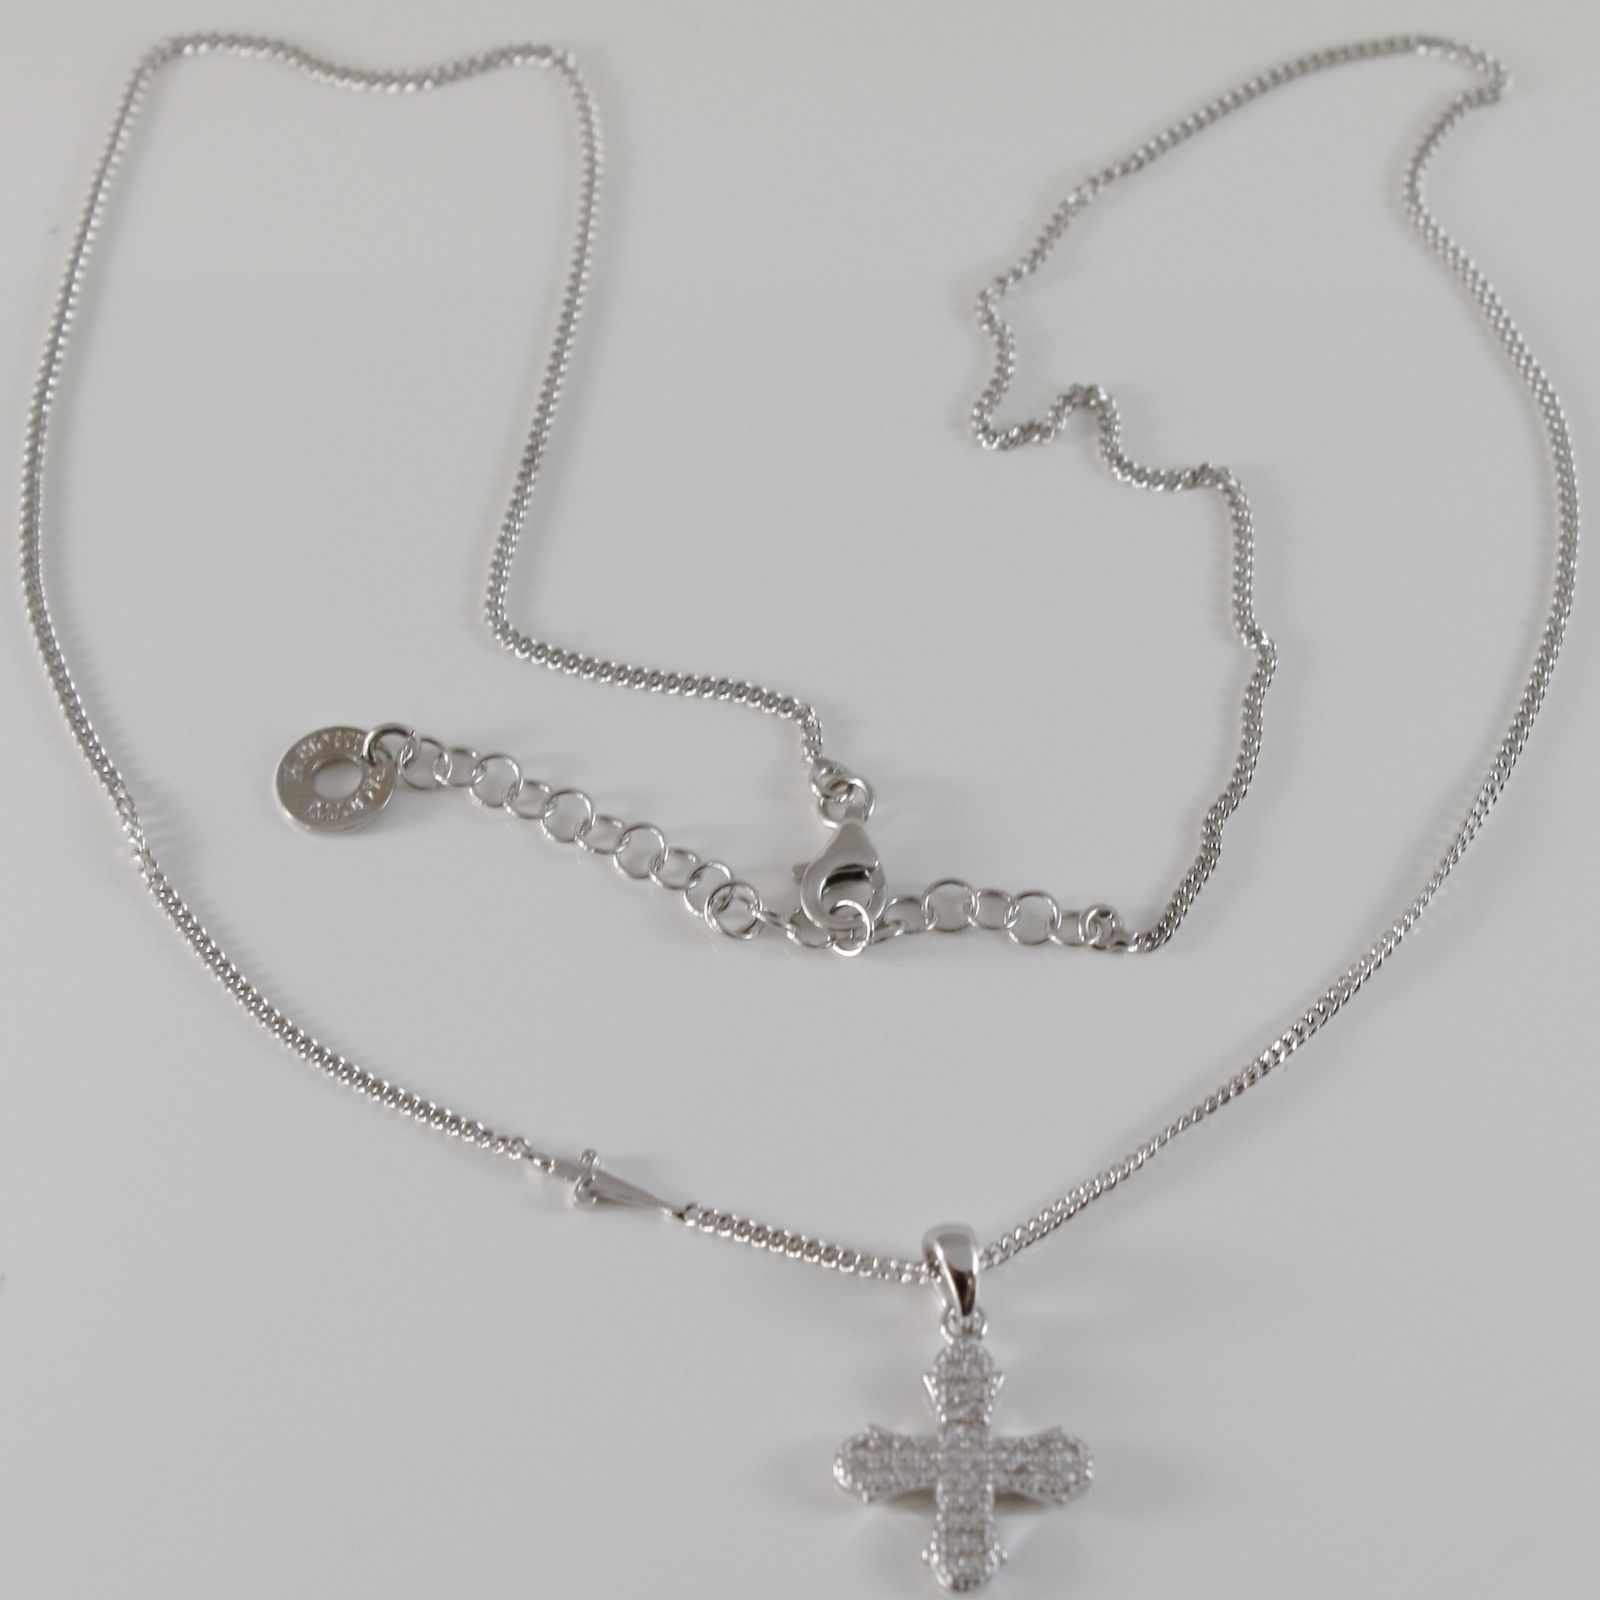 925 STERLING SILVER NECKLACE BY CESARE PACIOTTI, CROSS PENDANT, SWORD CURB CHAIN